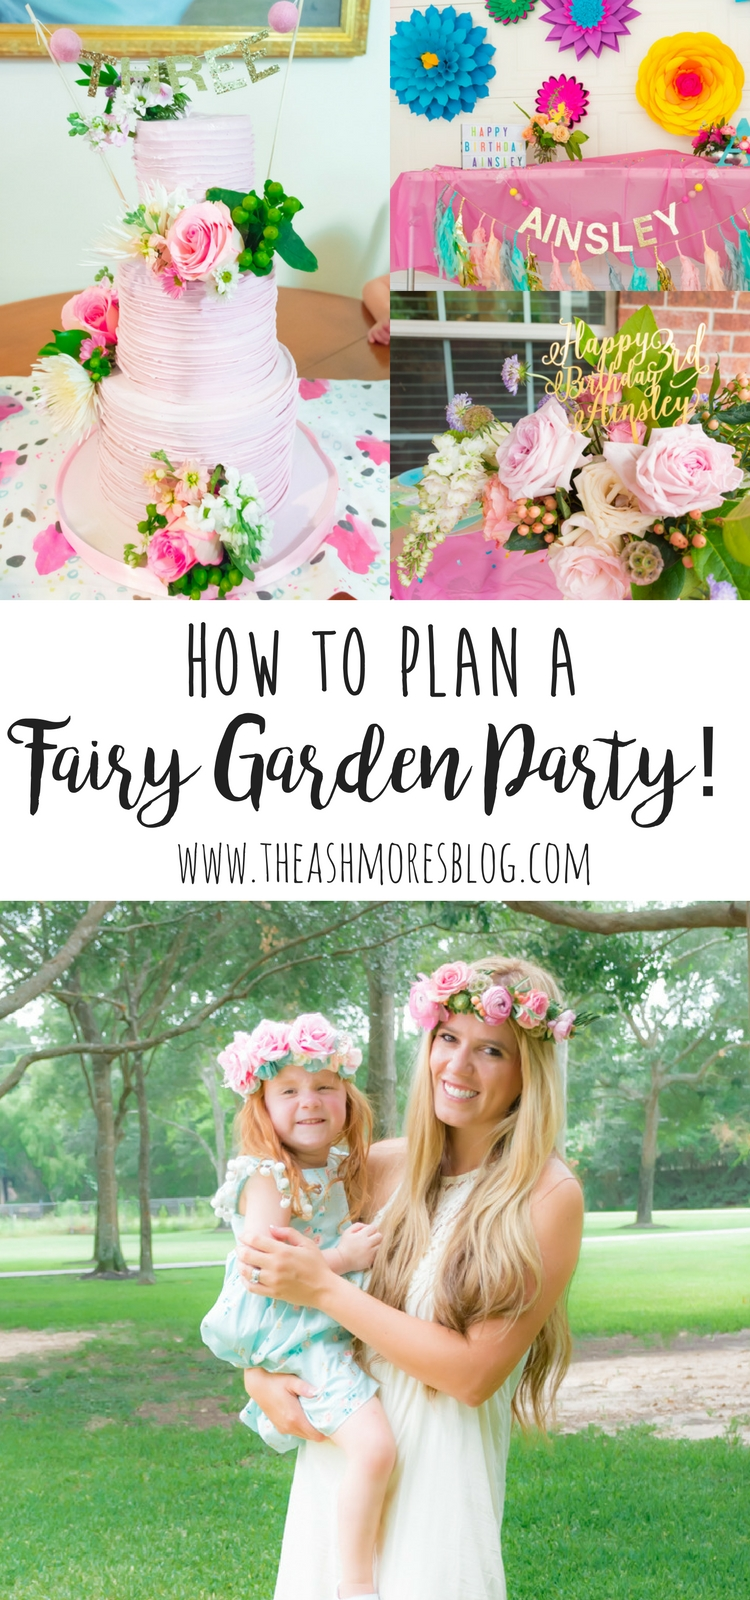 Ainsleys 3rd Birthday A Fairy Garden Party The Ashmores Blog